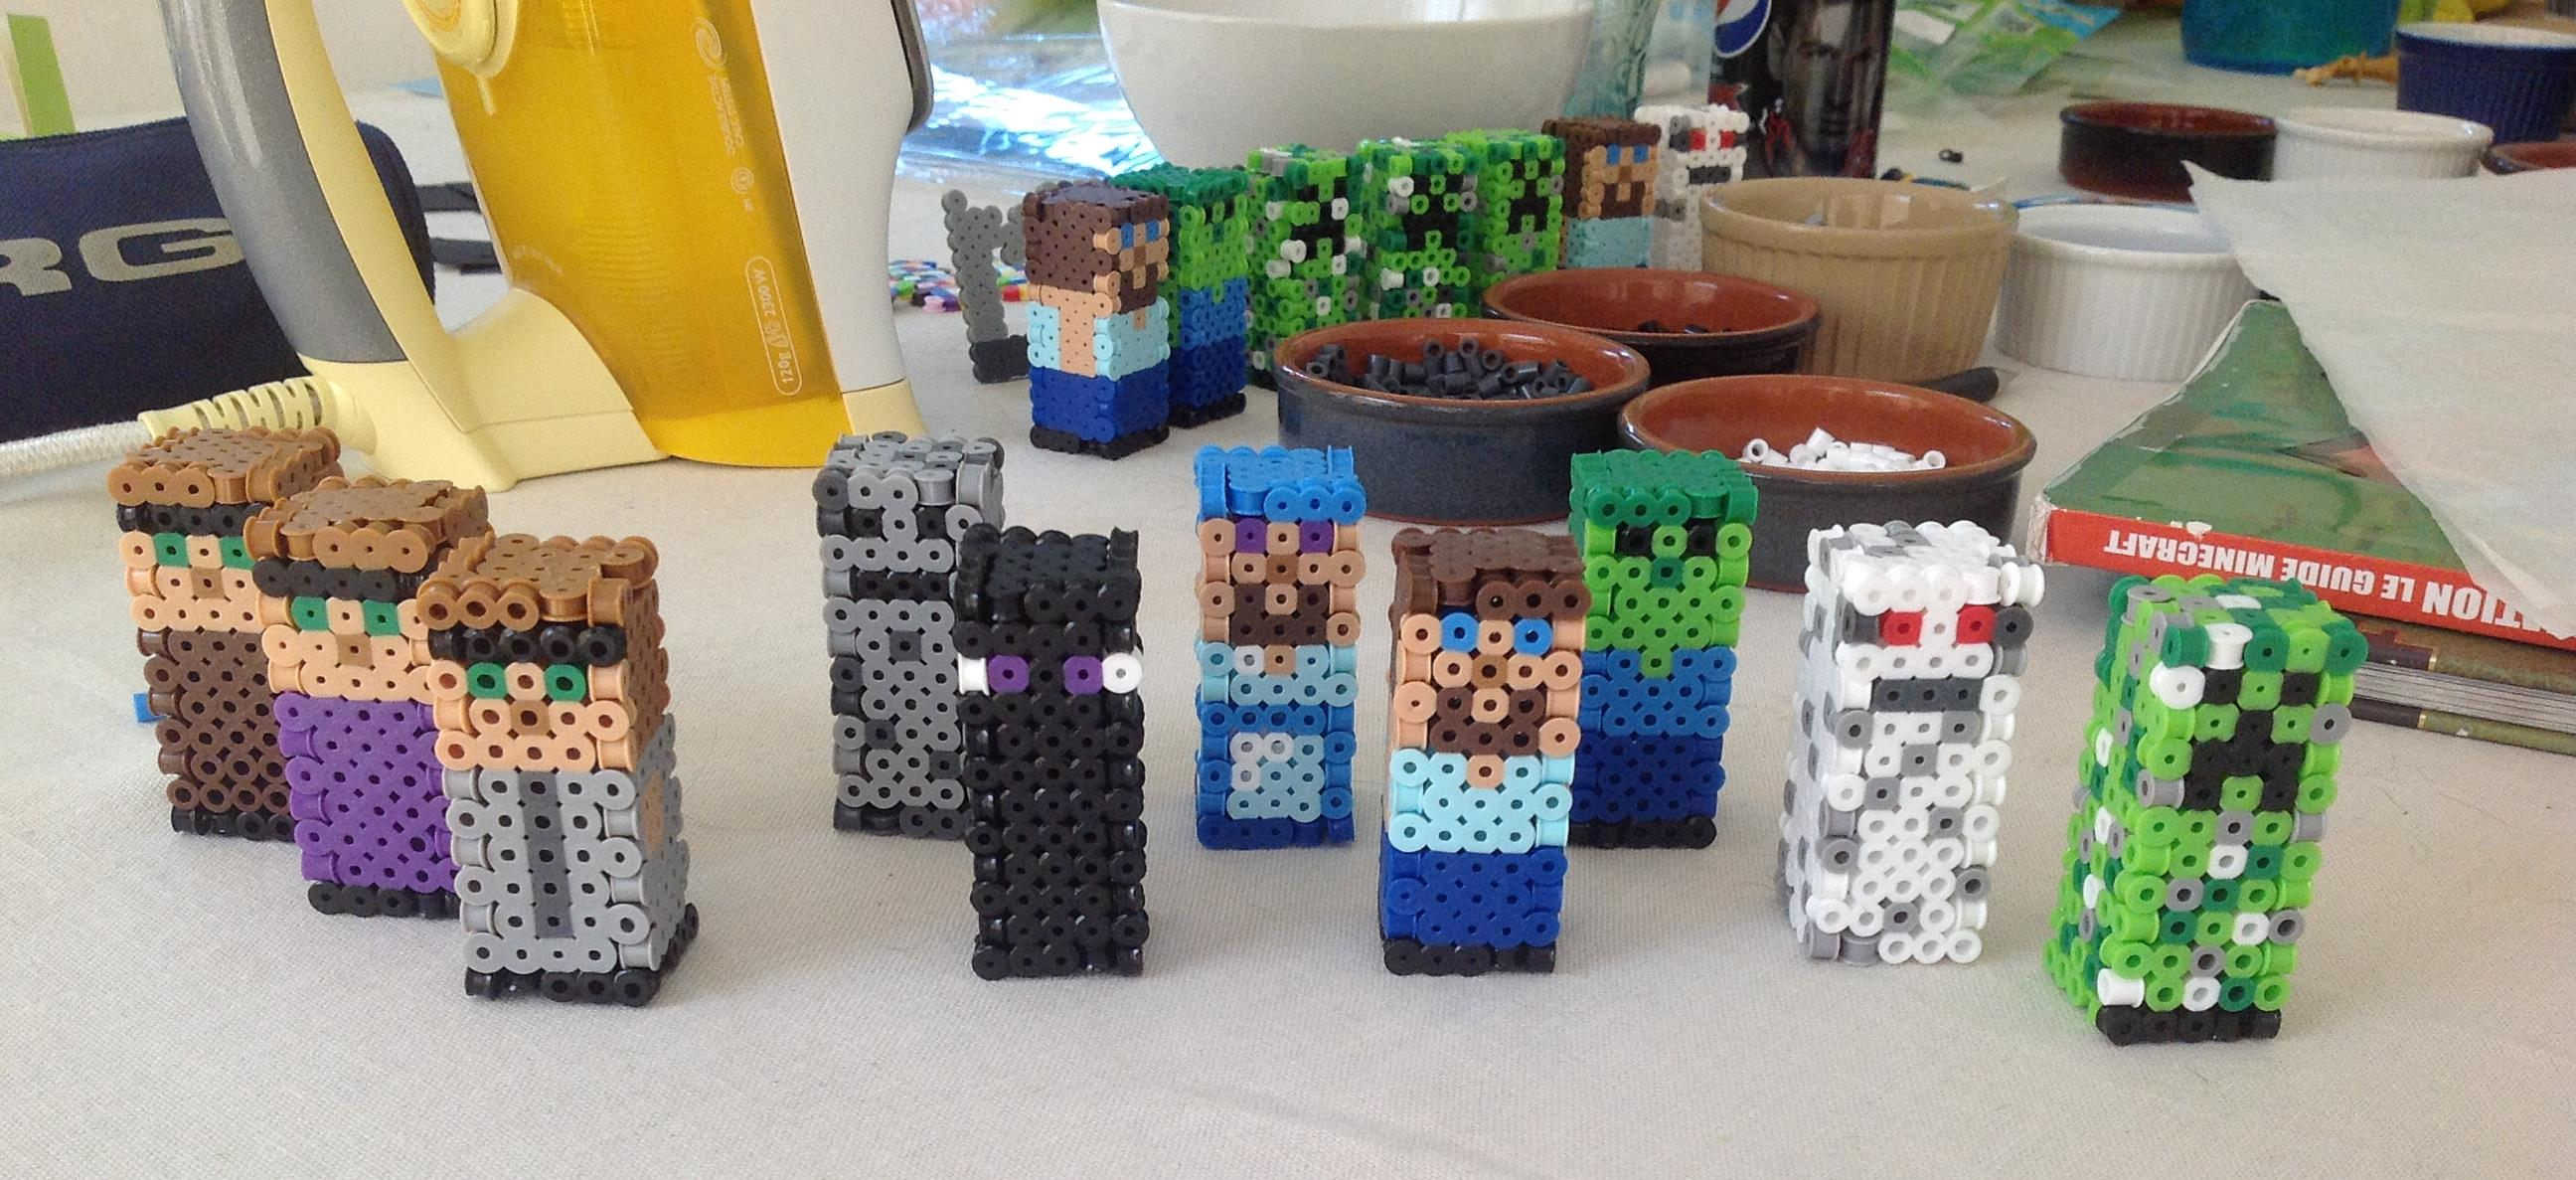 Neile's Minecraft Guys1